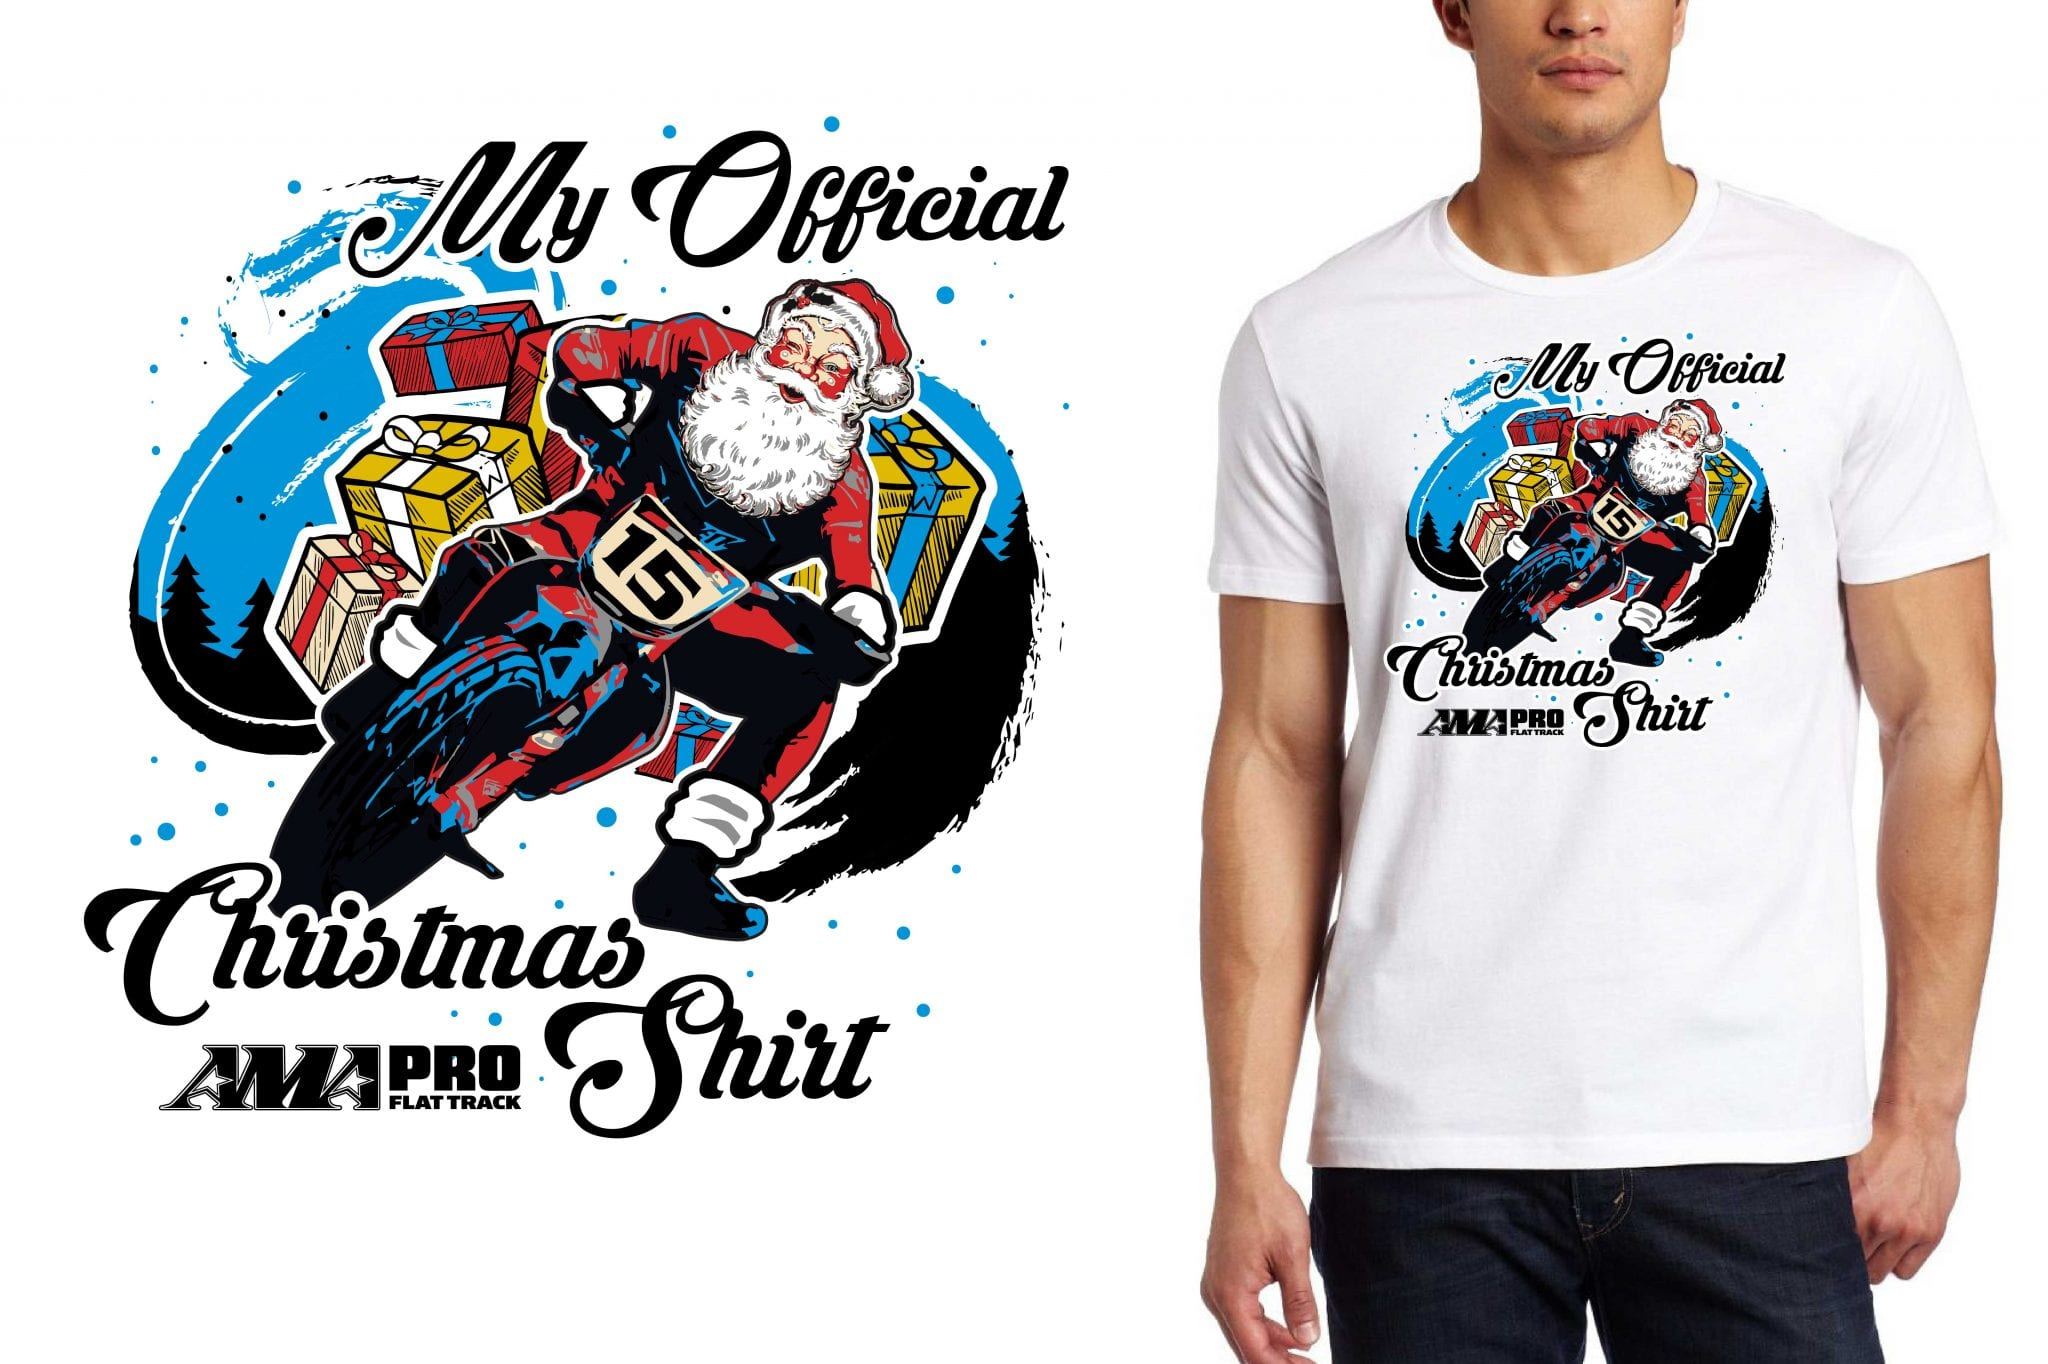 My Official Christmas Shirt for AMA PRO FLAT TRACK TSHIRT DESIGN | |